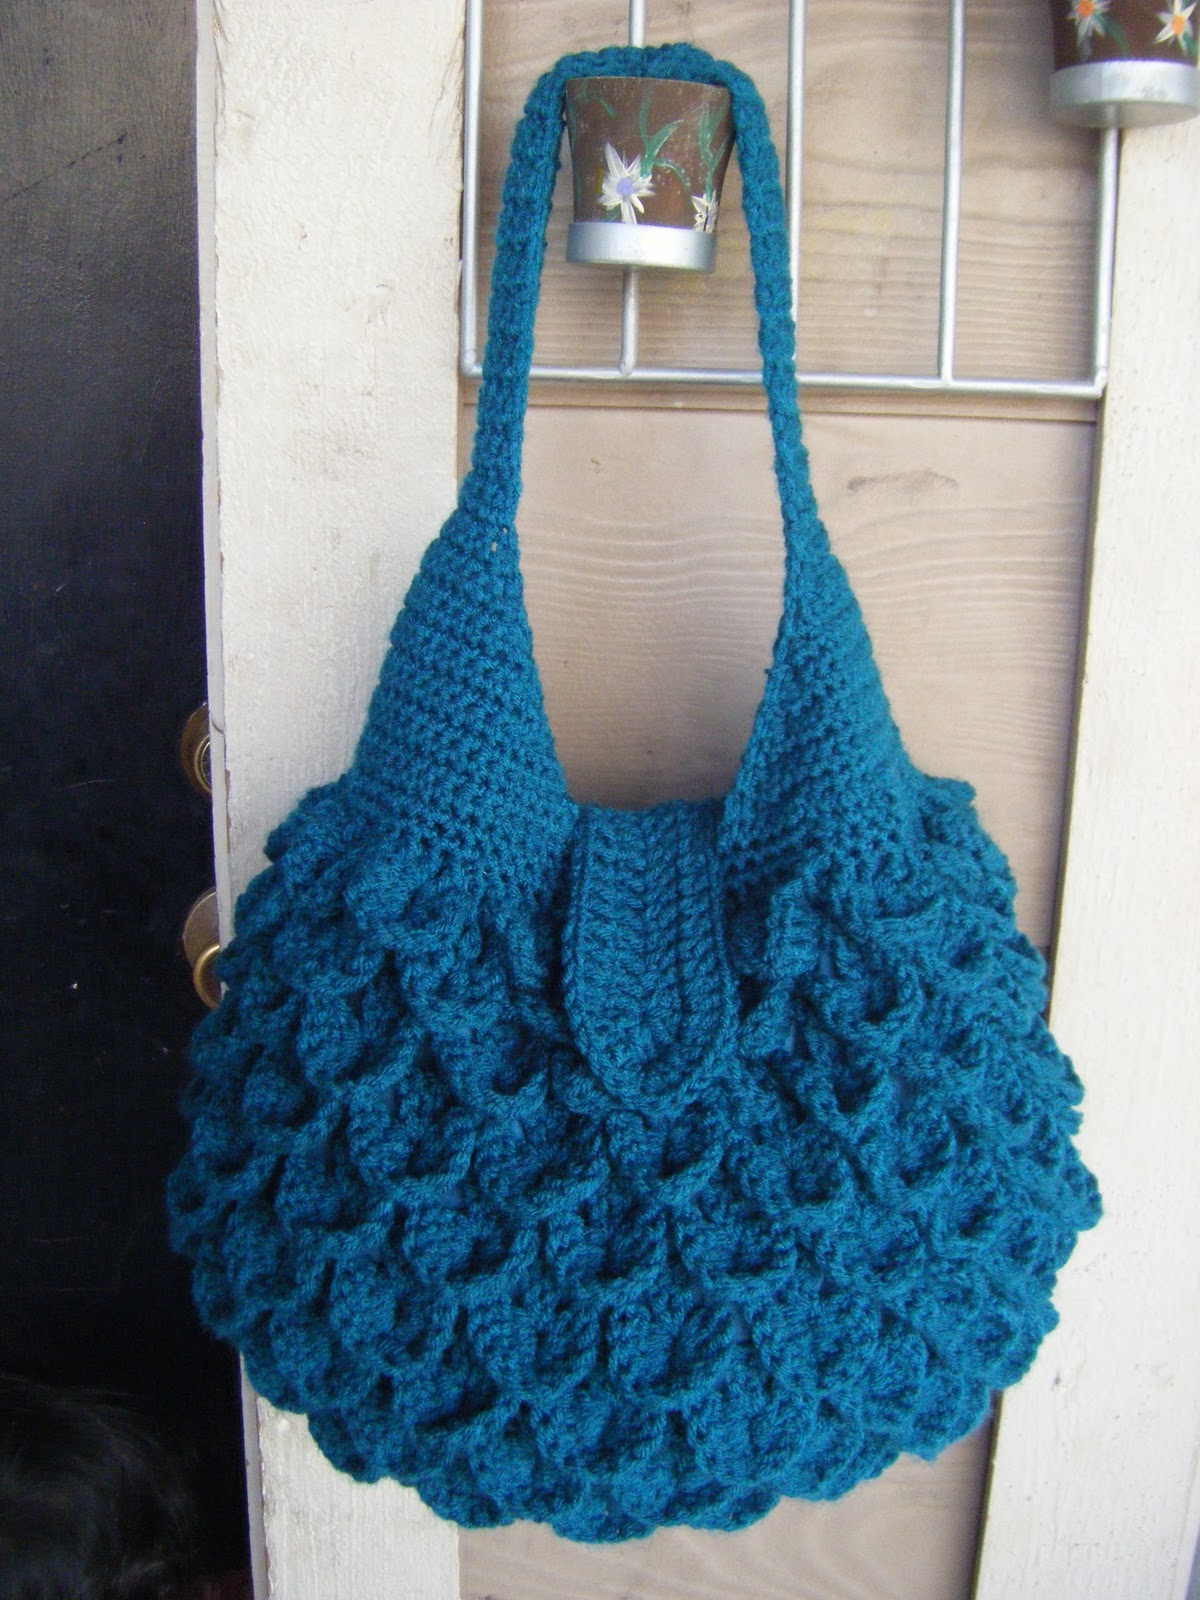 Bag Crochet Pattern Free Download : Free Purse Crochet Patterns, Free Bag Crochet Patterns from our